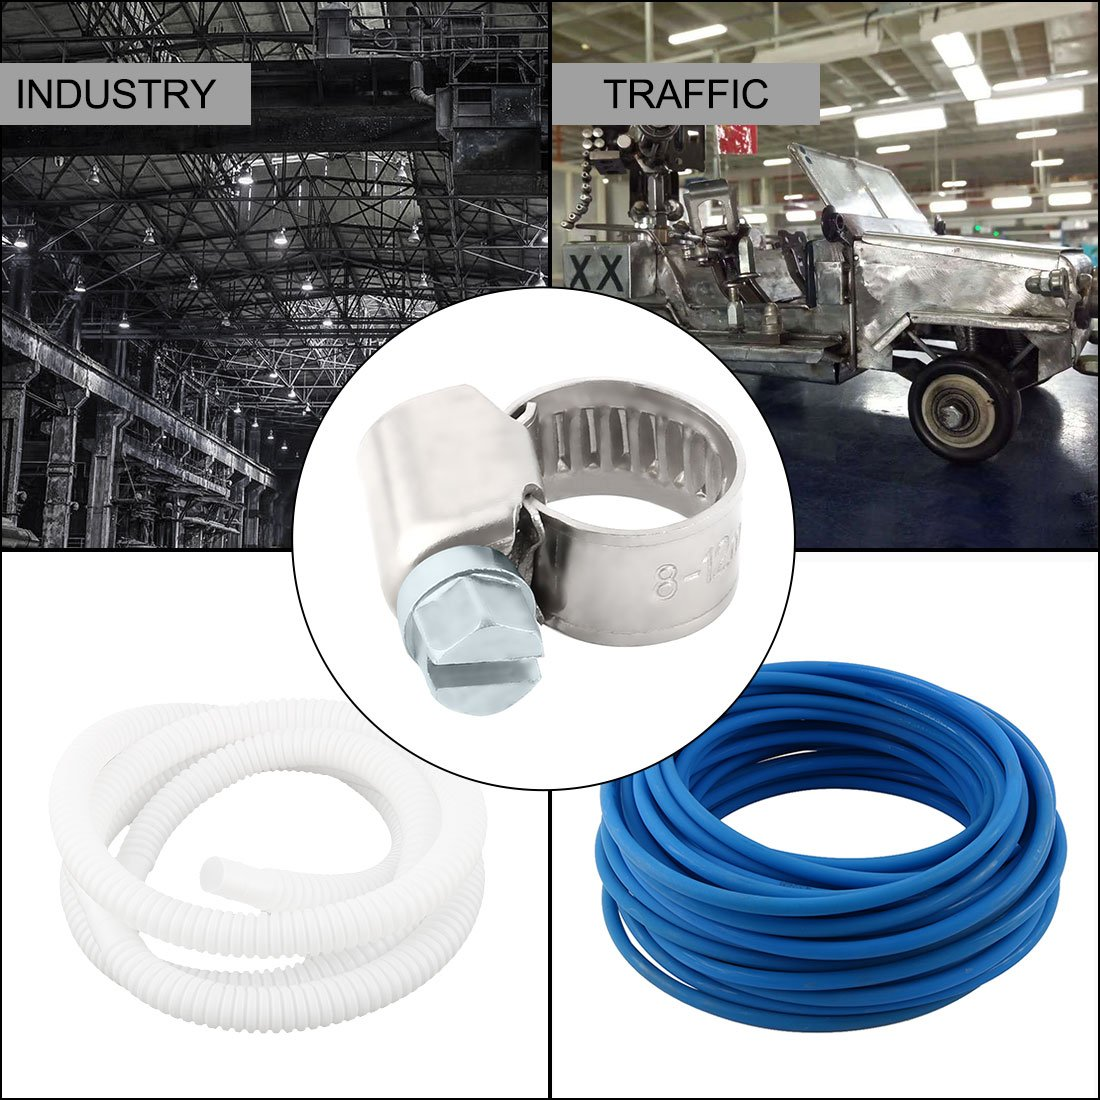 5//16-1//2 Inch Dia Pack of 10 a17121100ux0100 uxcell Stainless Steel Adjustable Worm Drive Gear Clip Clamping Range Hose Clamp